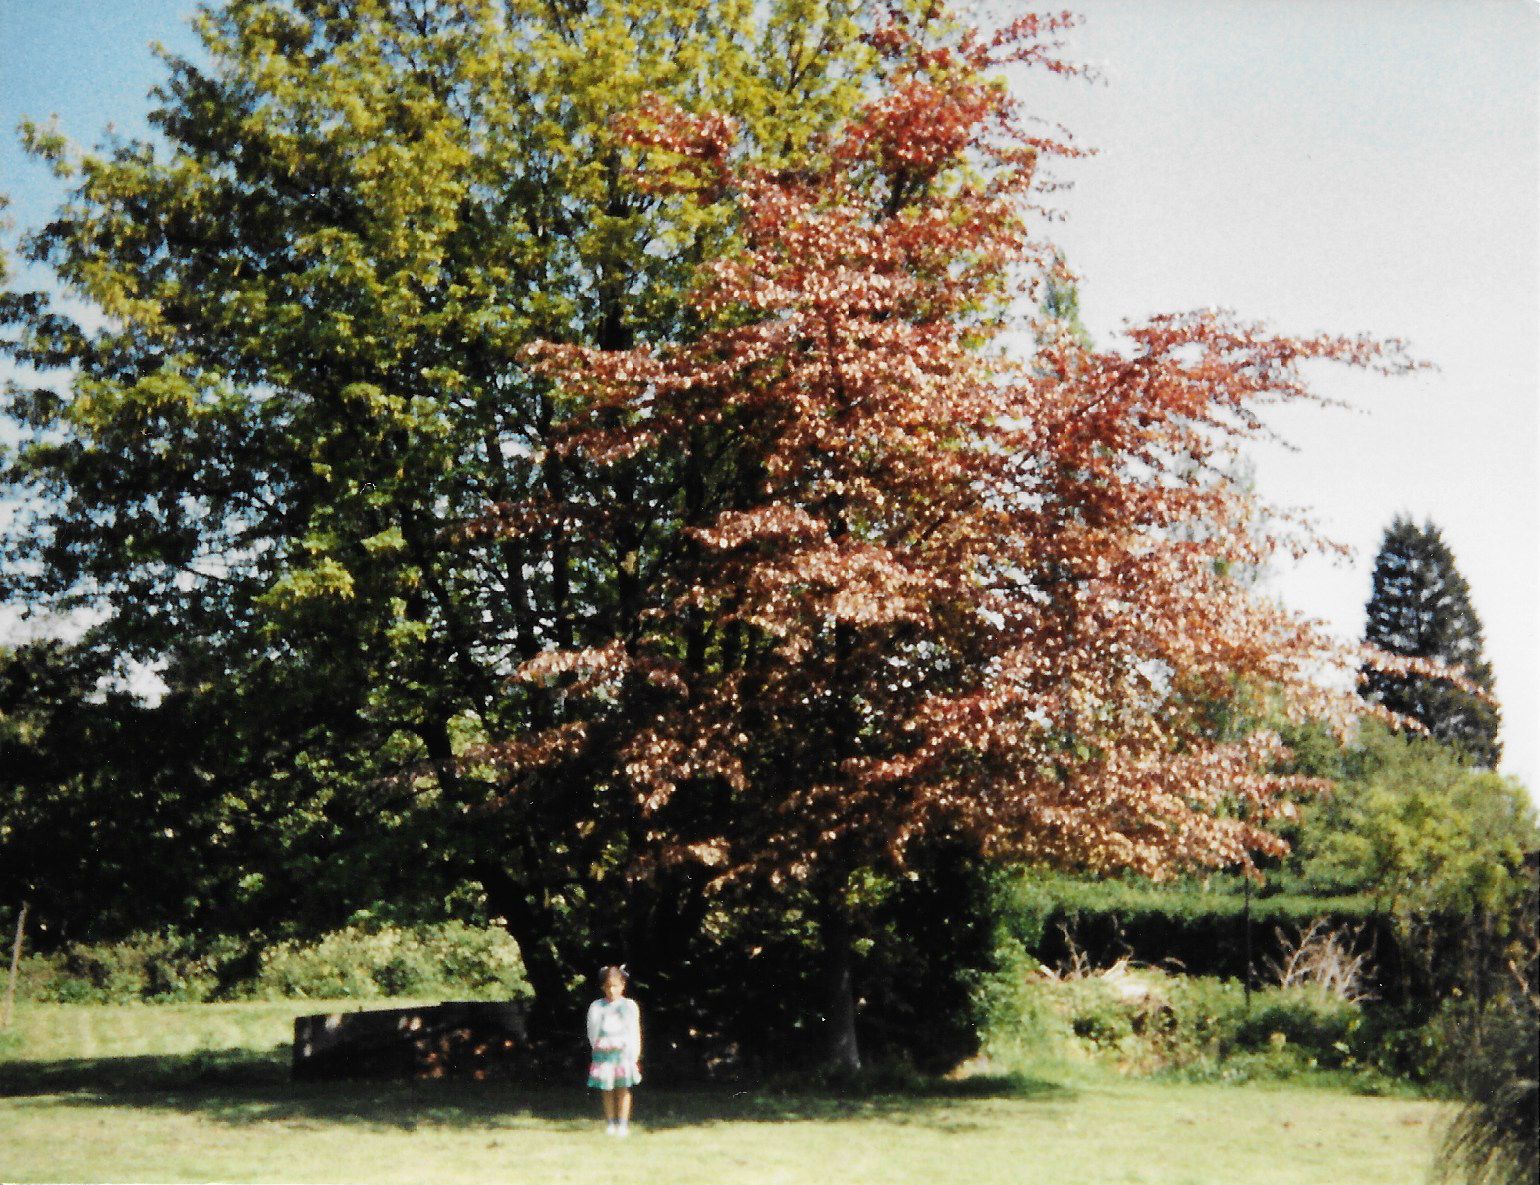 A small child standing in front of large trees with pink blossom, hedges and tall trees behind